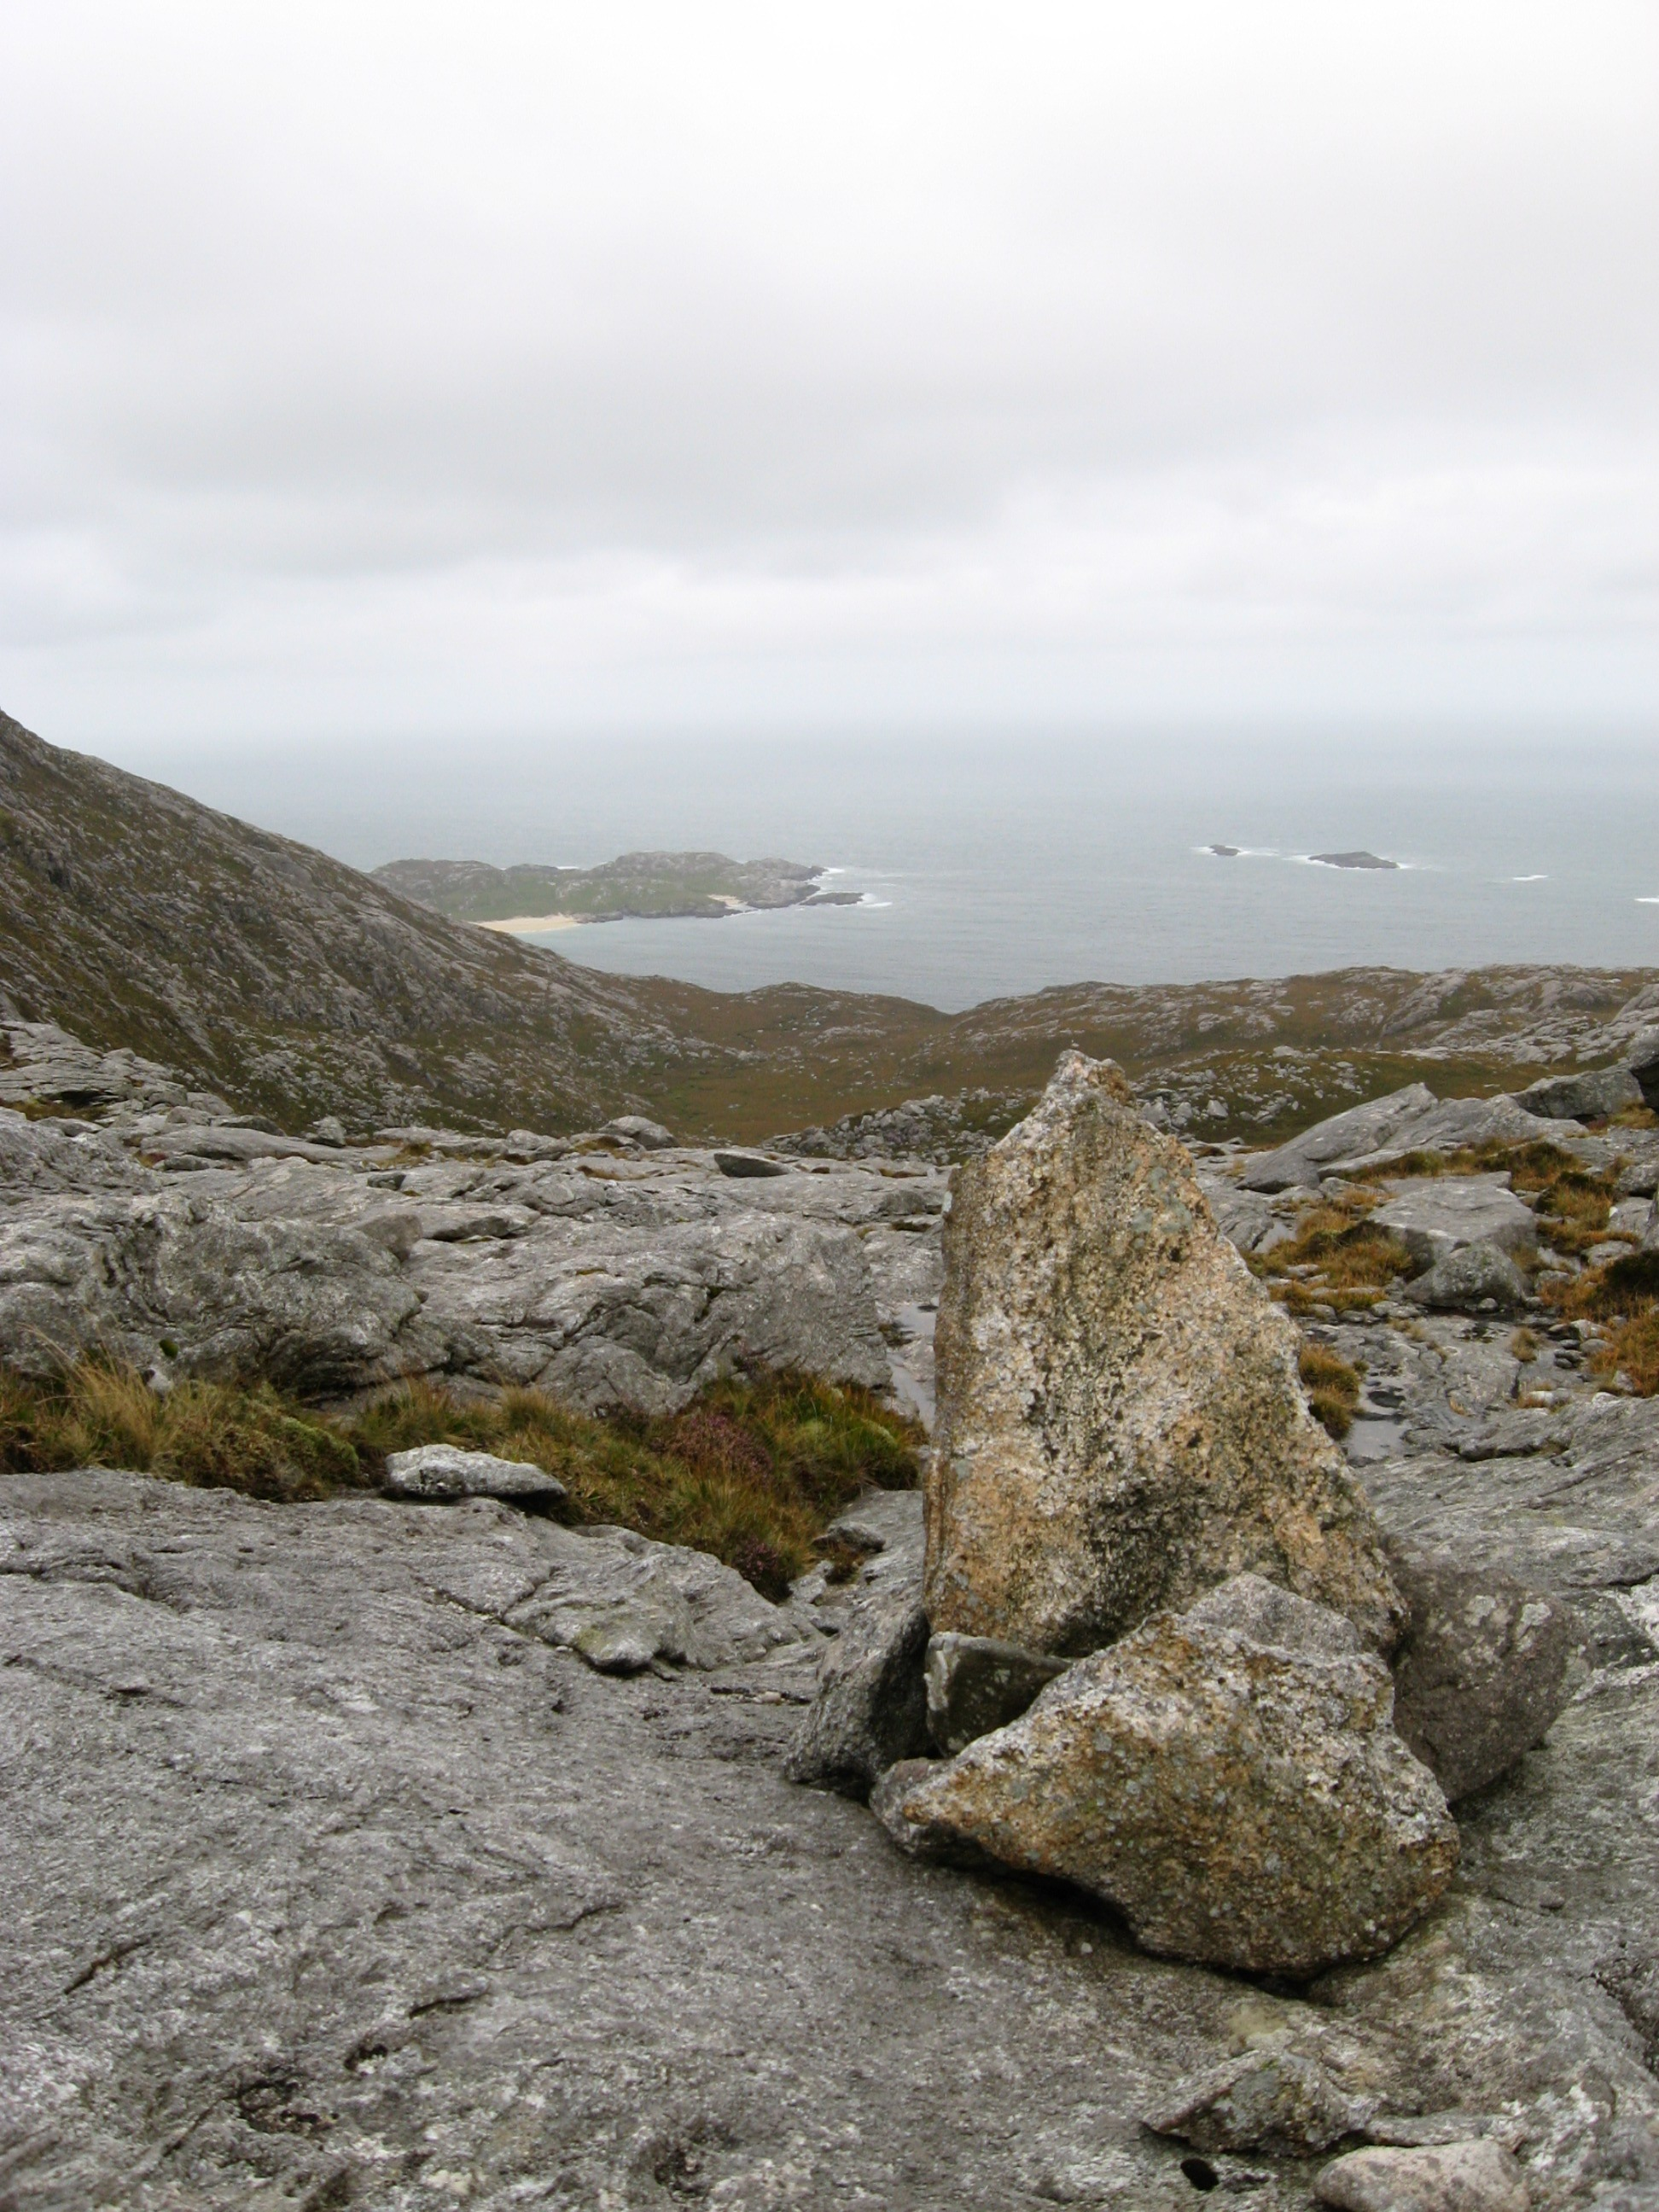 """""""cairns"""" - from the Scottish Gaelic, meaning stacked or standing stones used as path markers or memorials"""